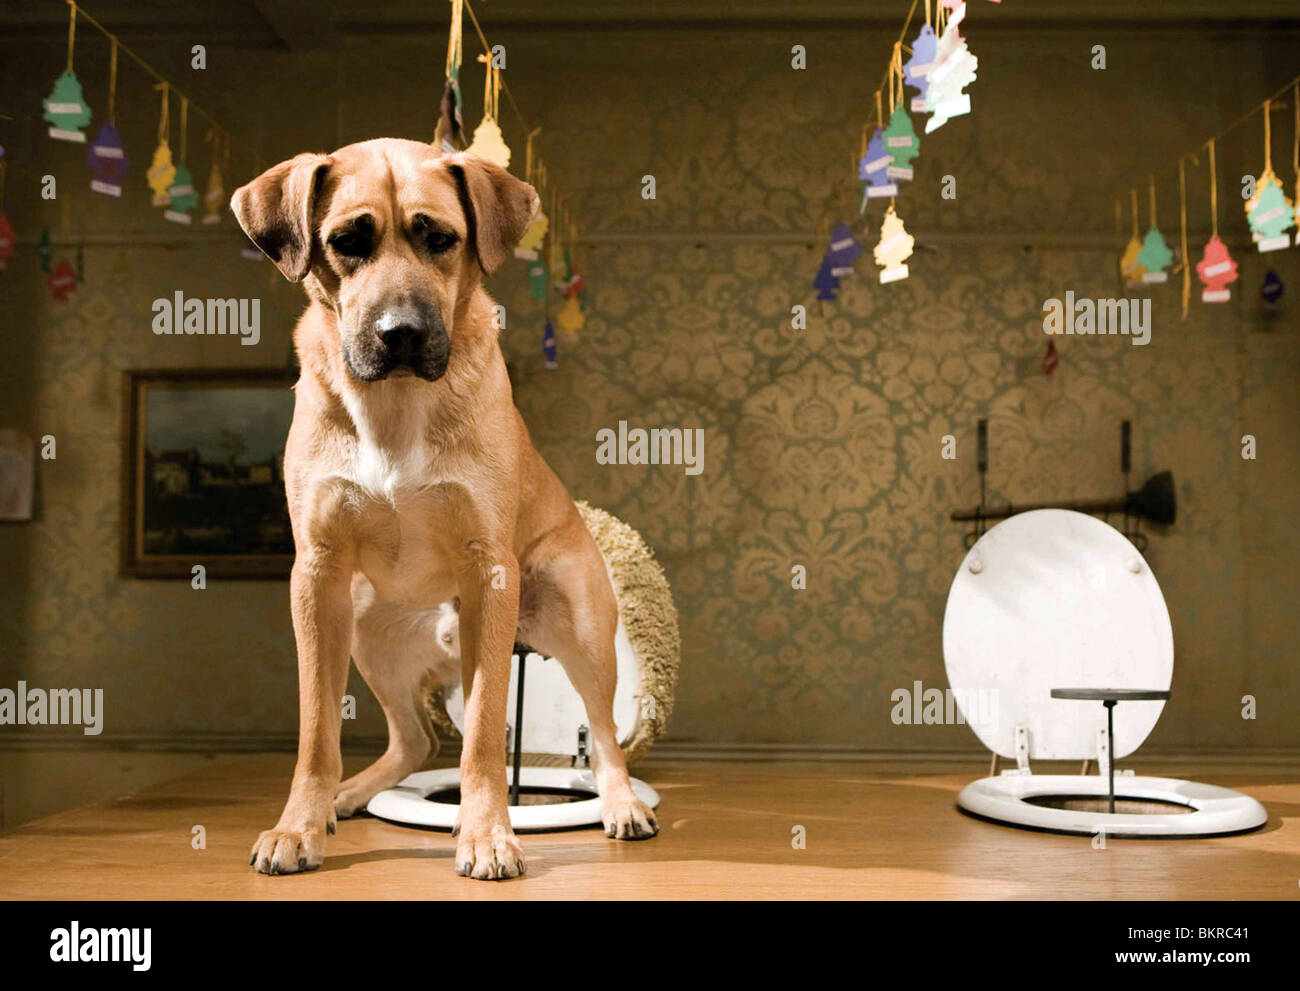 HOTEL FOR DOGS (2009) THOR FREUDENTHAL (DIR) 003 - Stock Image